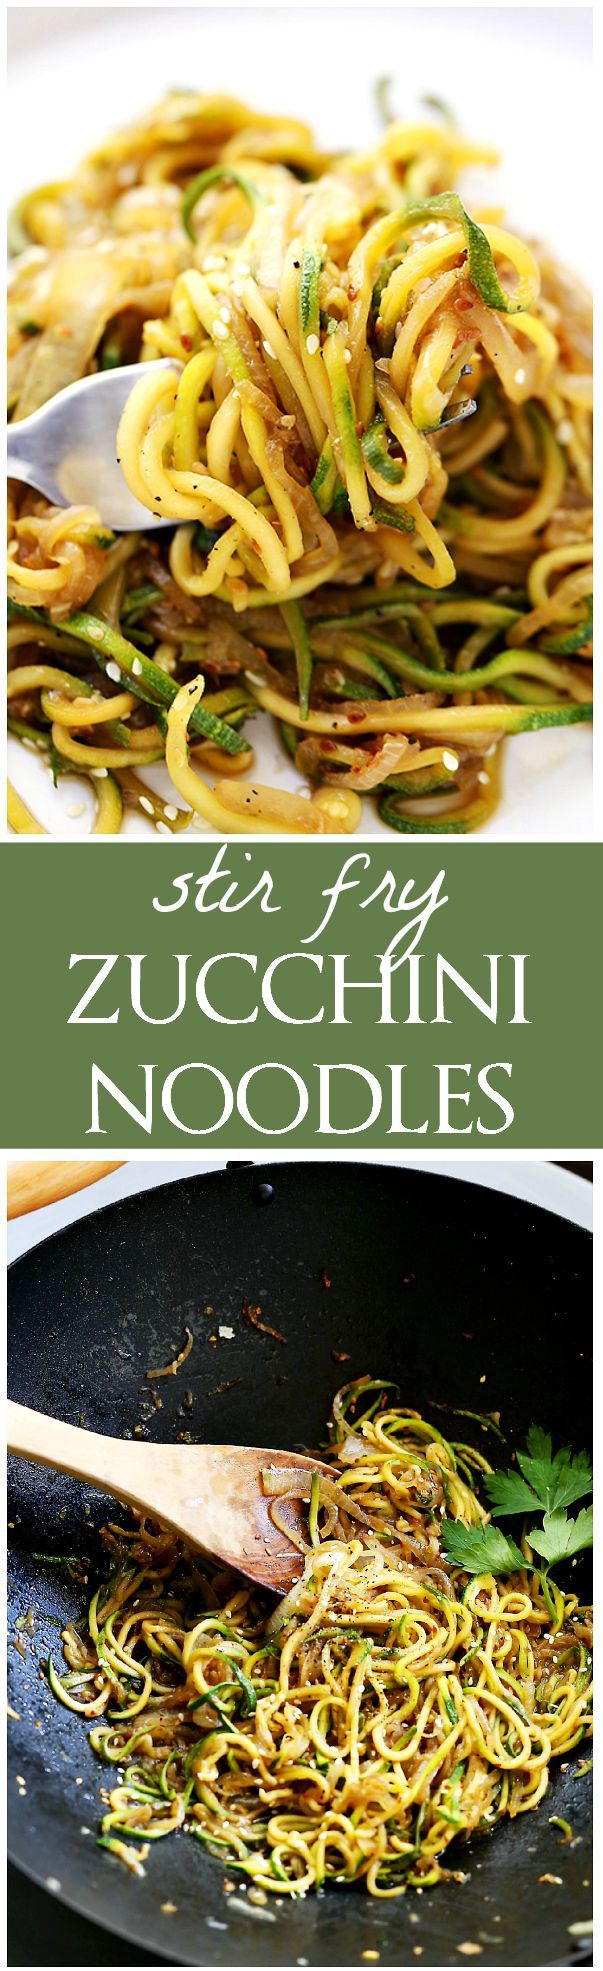 Stir Fry Zucchini Noodles 2 T Vegetable Oil 2 Yellow Onions 4